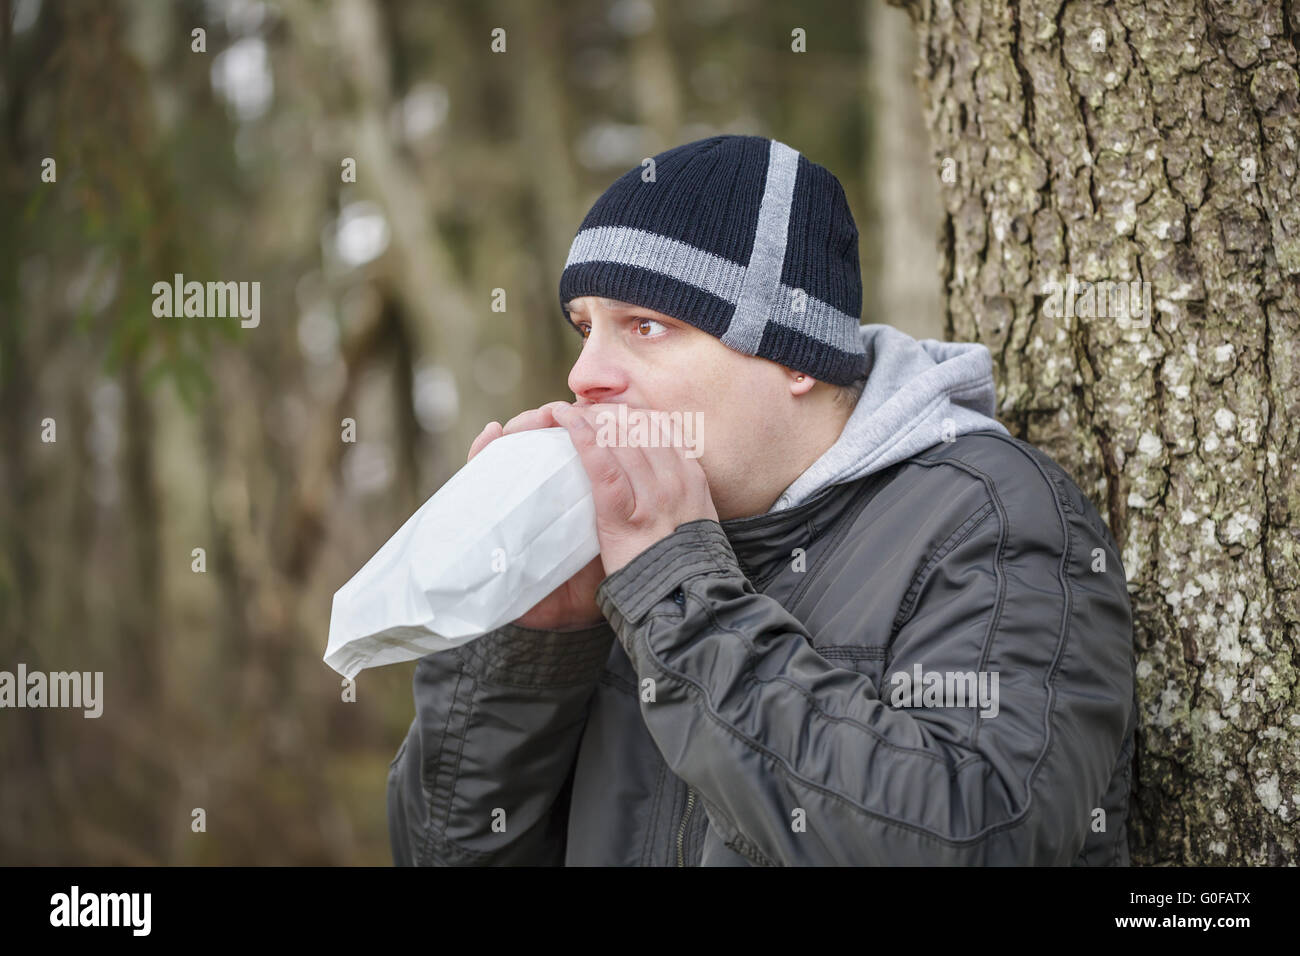 Worried man breathe into a paper bag near tree - Stock Image